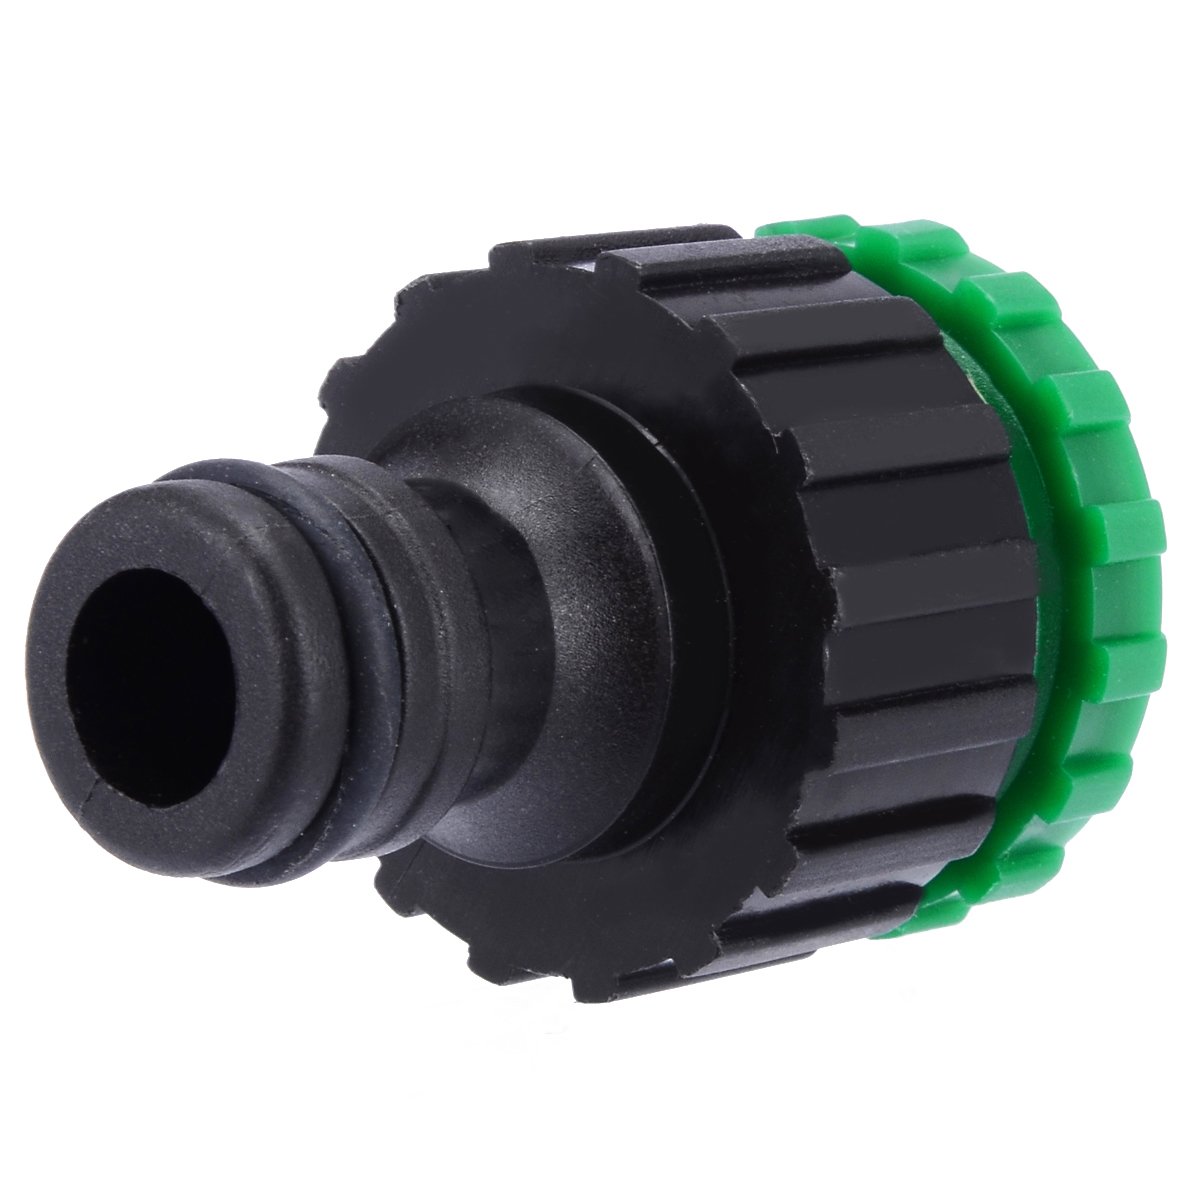 """1/2 and 3/4"""" Garden Tap Hose Pipe Connector Fast Coupling Adaptor Drip Tape For Pressure Washers Garden Irrigation Tool"""